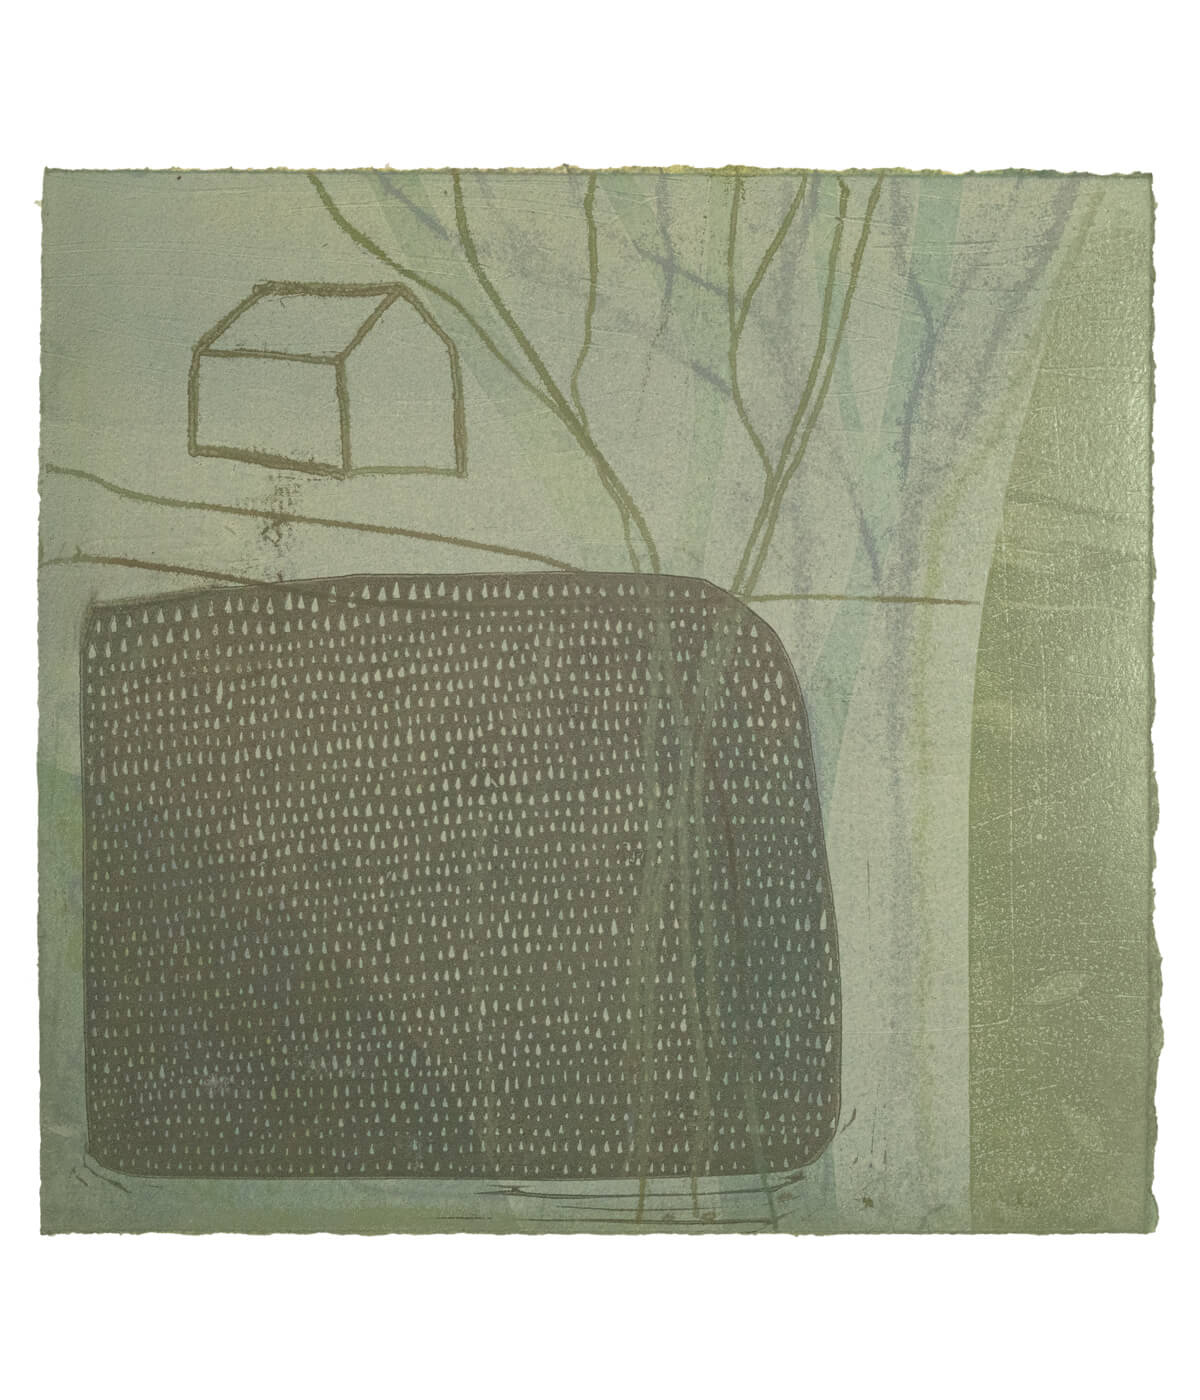 Plot, a monotype print by Sarah Kirby